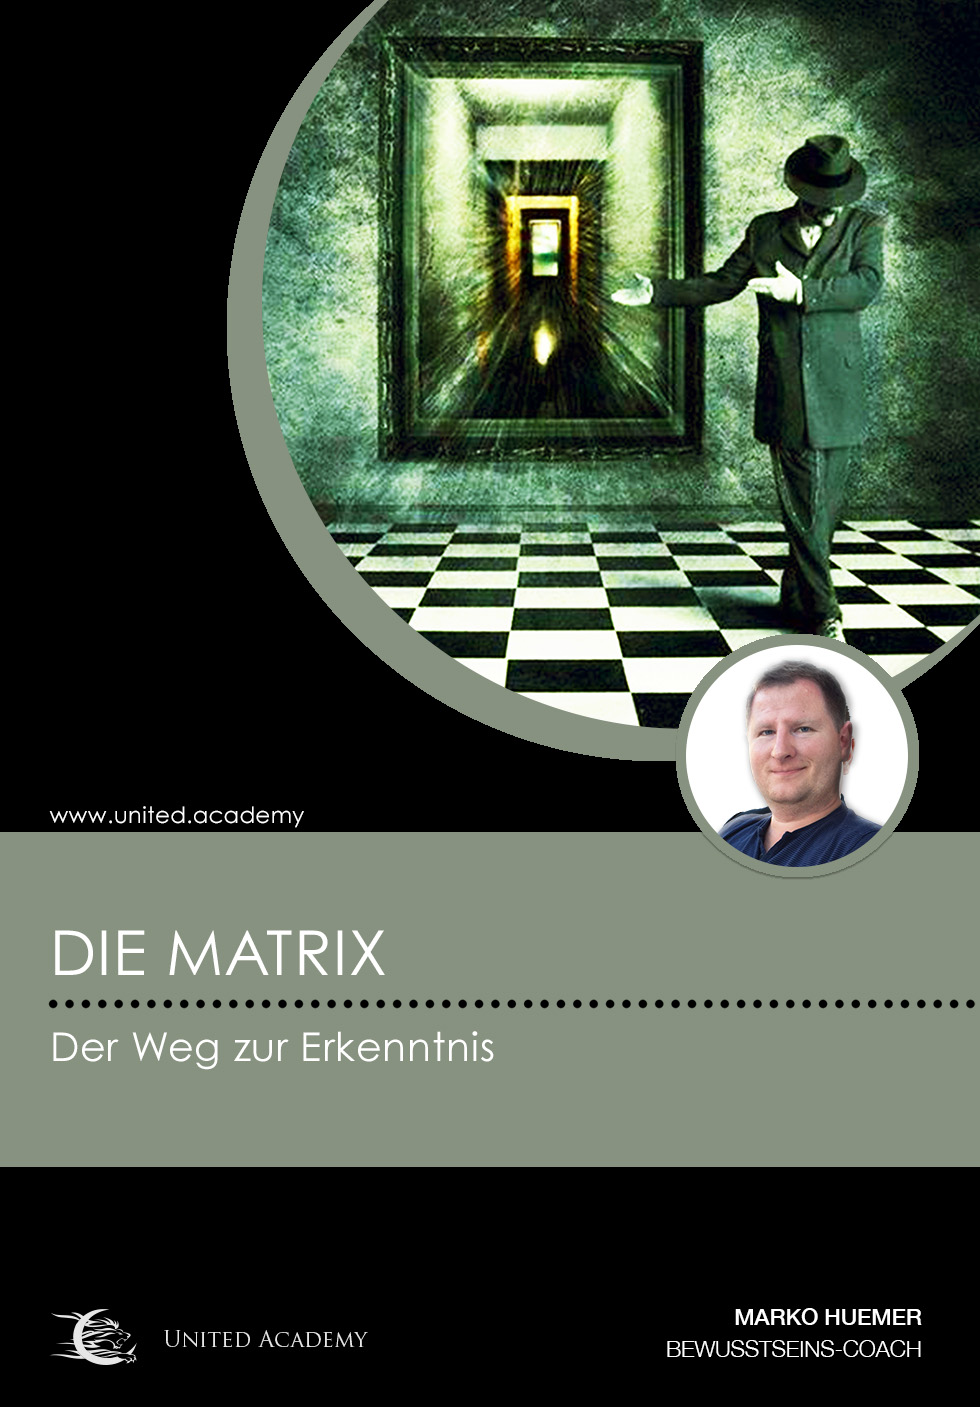 Die Matrix